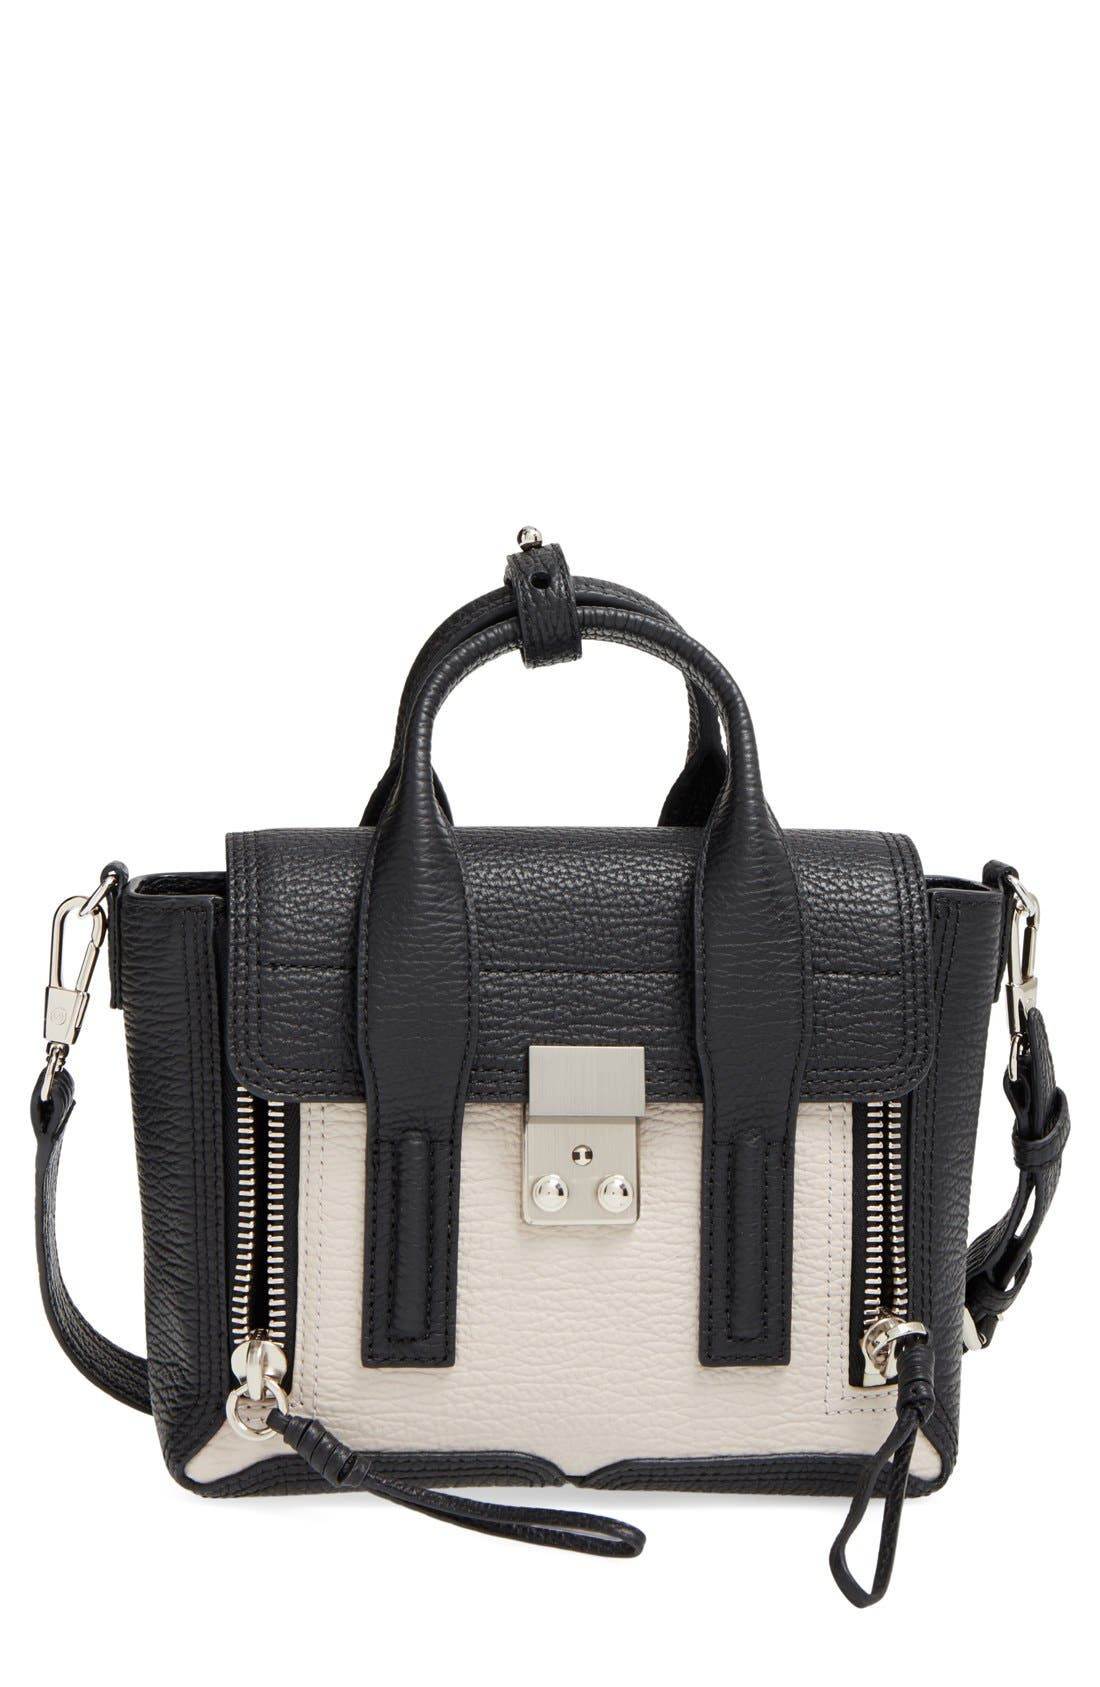 Main Image - 3.1 Phillip Lim 'Mini Pashli' Colorblock Satchel